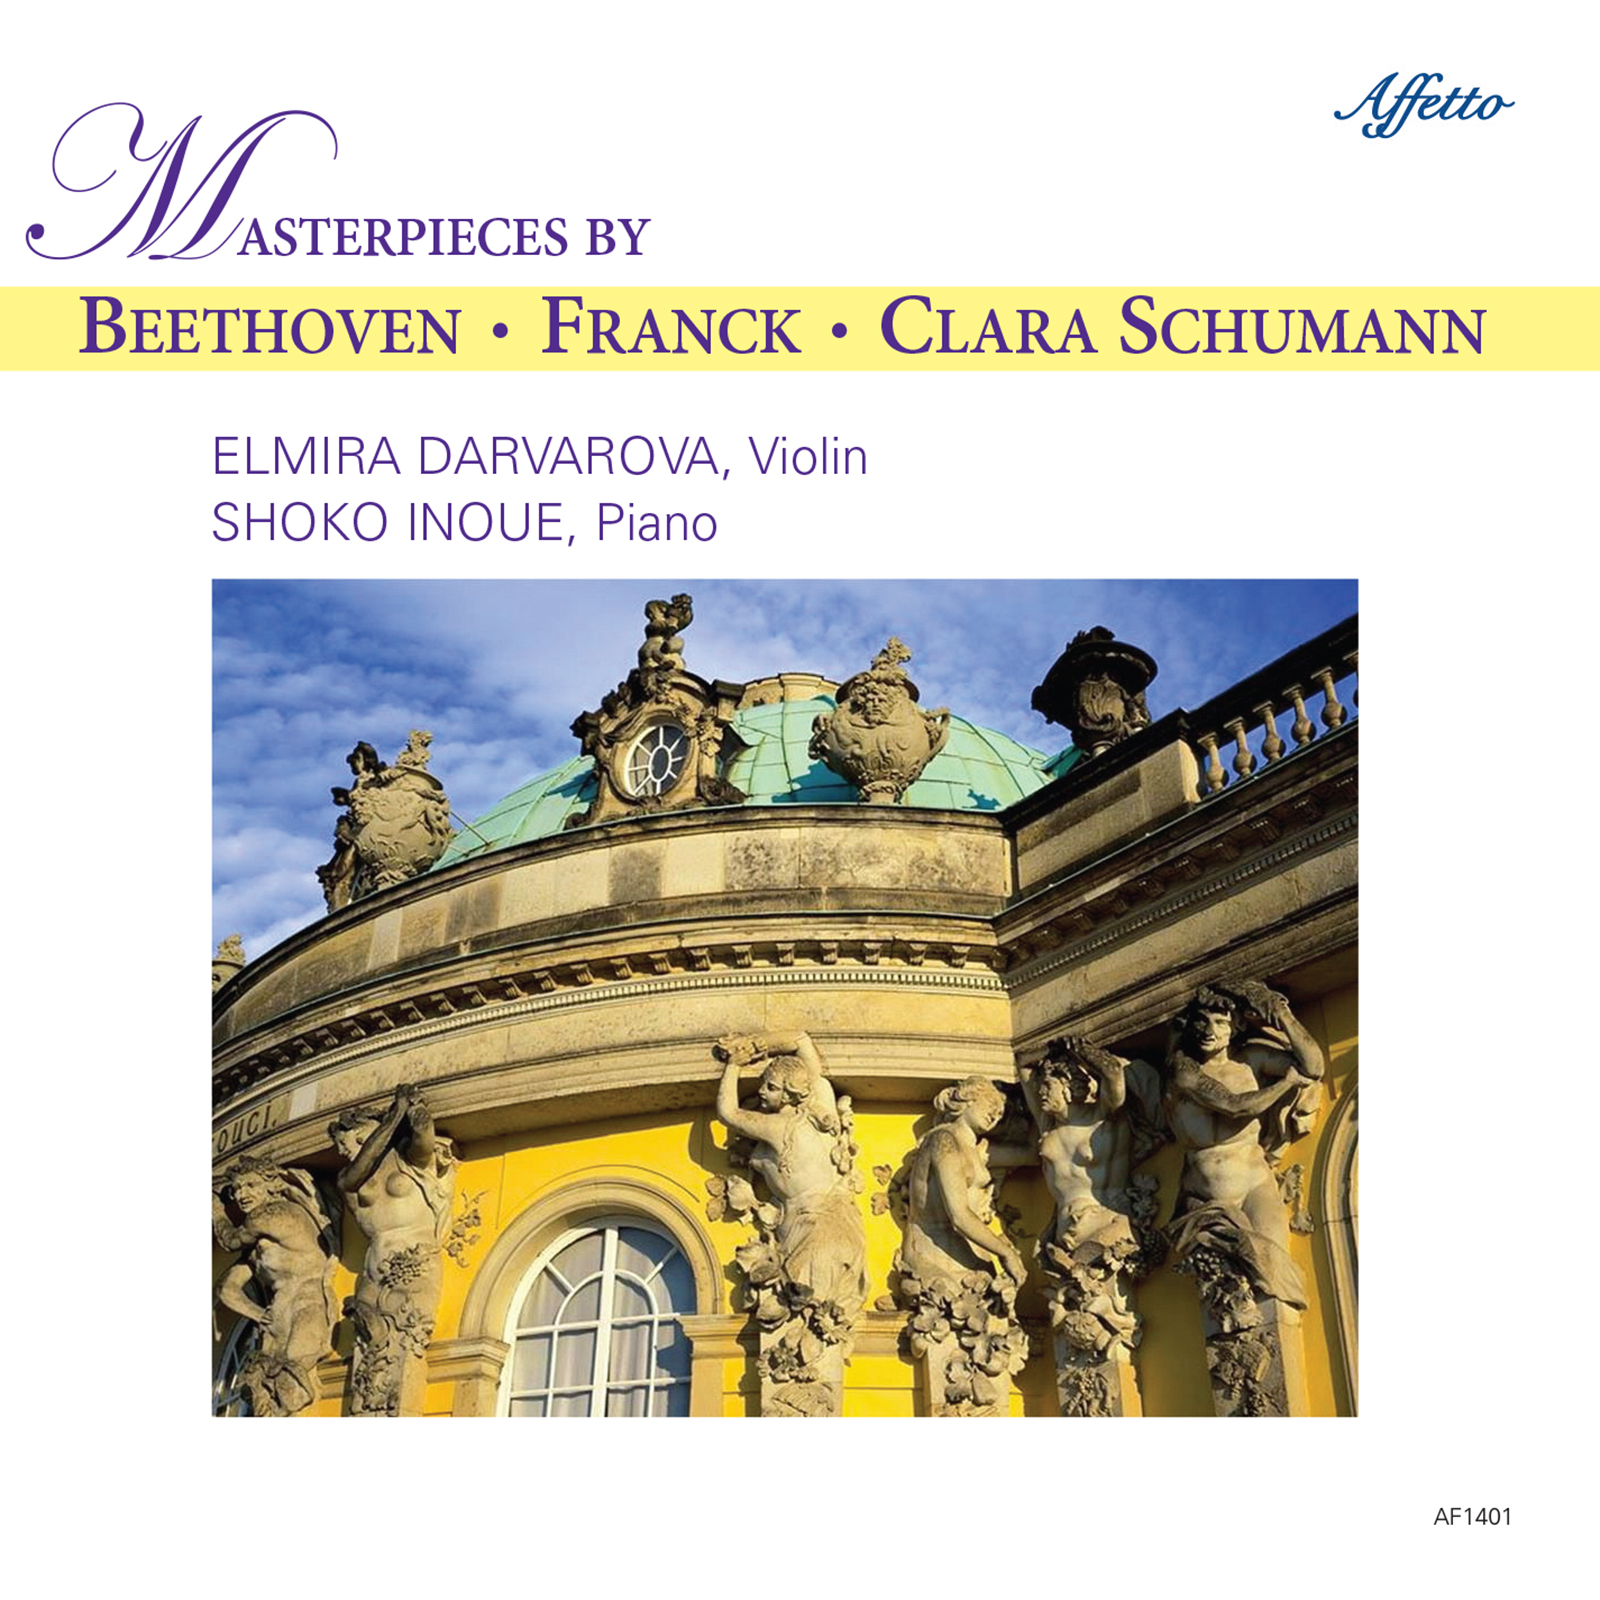 Masterpieces By Beethoven, Franck, and Clara Schumann – Elmira Darvarova, Violin & Shoko Inoue, Piano